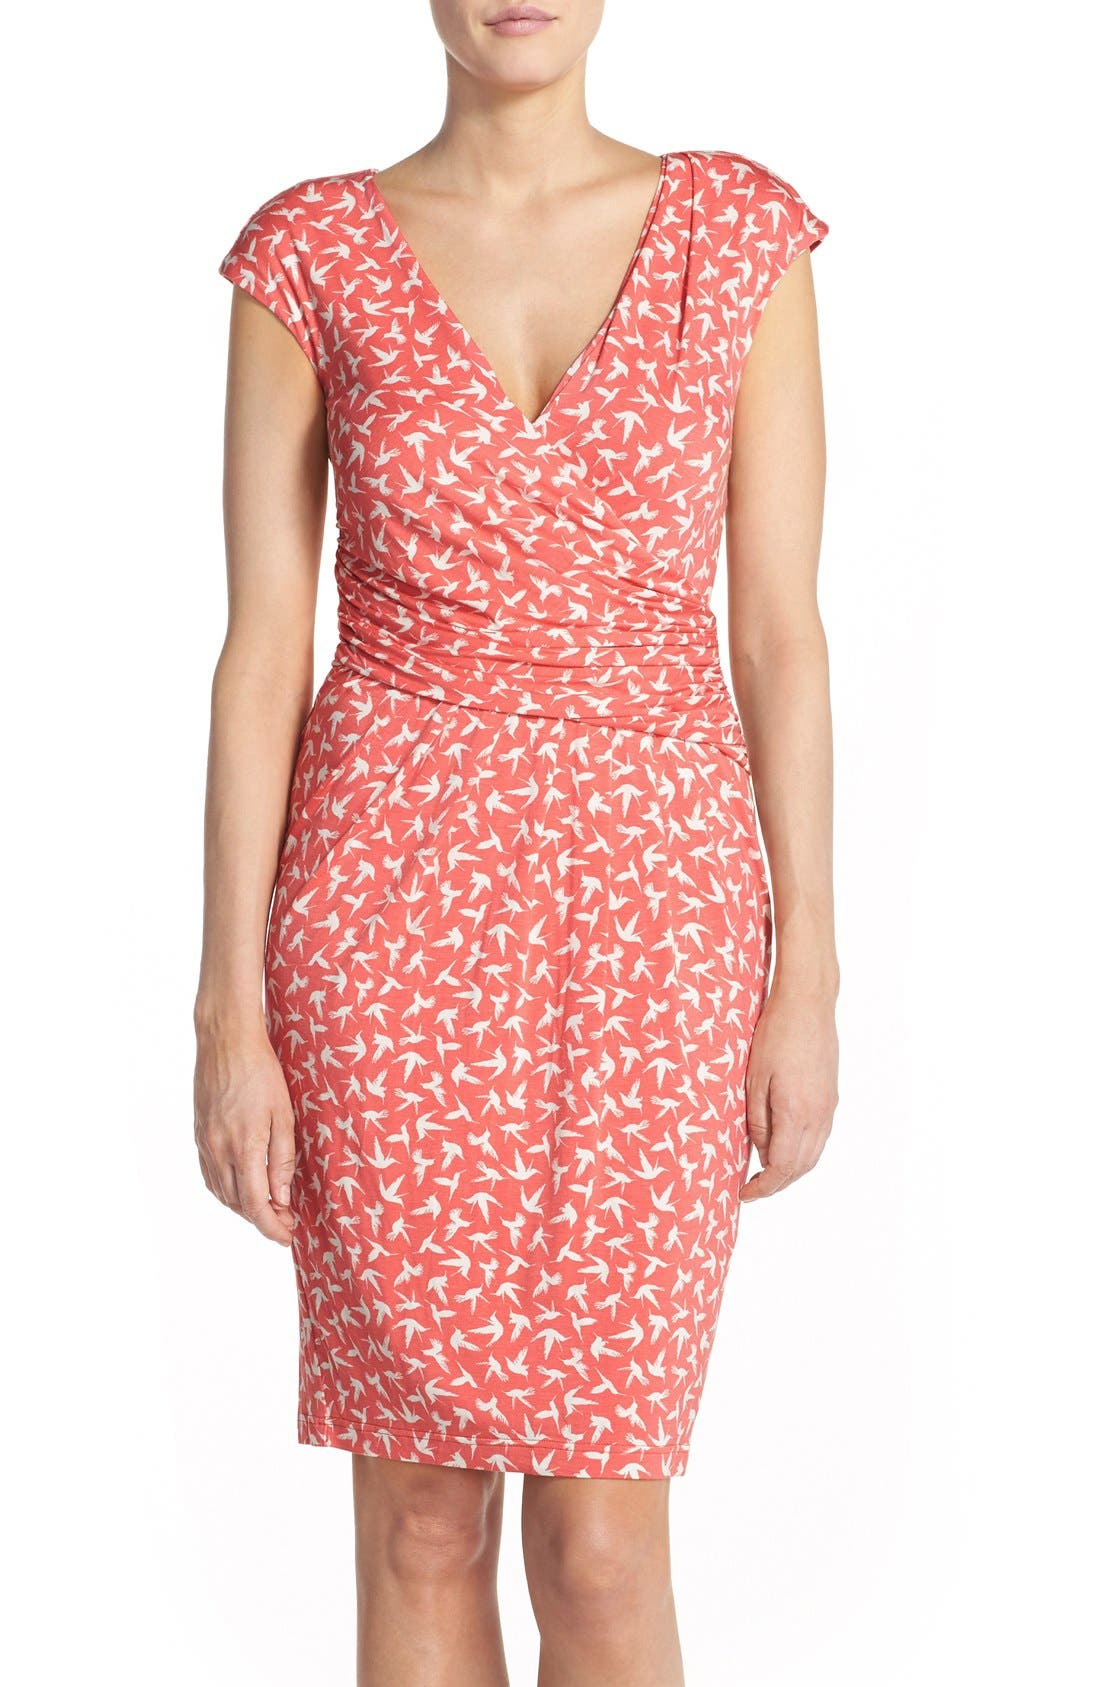 Alternate Image 1 Selected - Adrianna Papell Bird Print Knit Sheath Dress